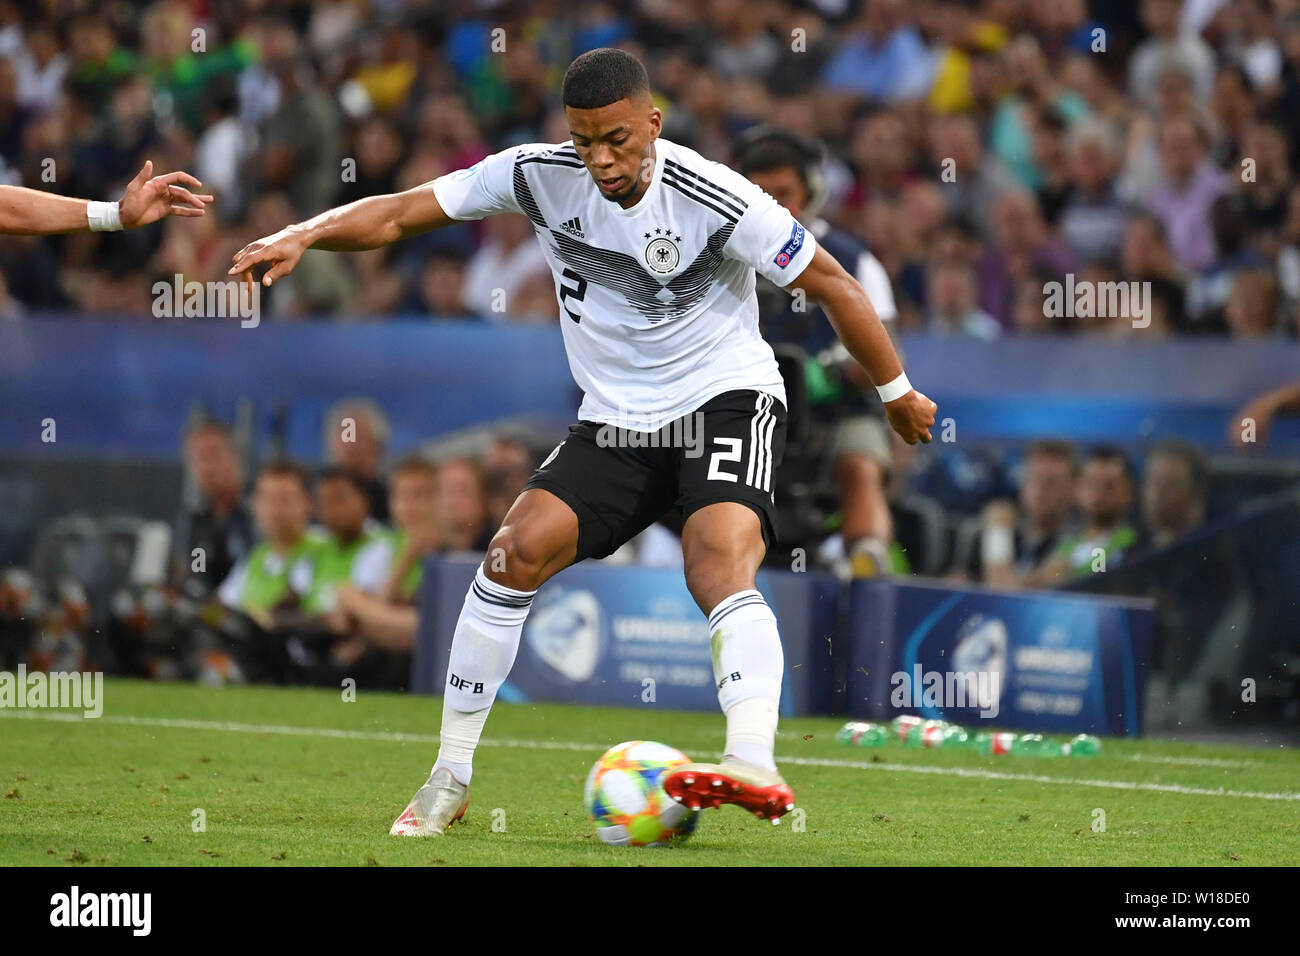 Udine, Italien. 30th June, 2019. Benjamin HENRICHS (GER), Action, Single Action, Frame, Cut Out, Full Body, Whole Figure. Spain (ESP) - Germany (GER) 2-1, at 30.06.2019 Stadio Friuli Udine. Football U-21, FINALE UEFA Under21 European Championship in Italy/SanMarino from 16.-30.06.2019. | Usage worldwide Credit: dpa/Alamy Live News - Stock Image